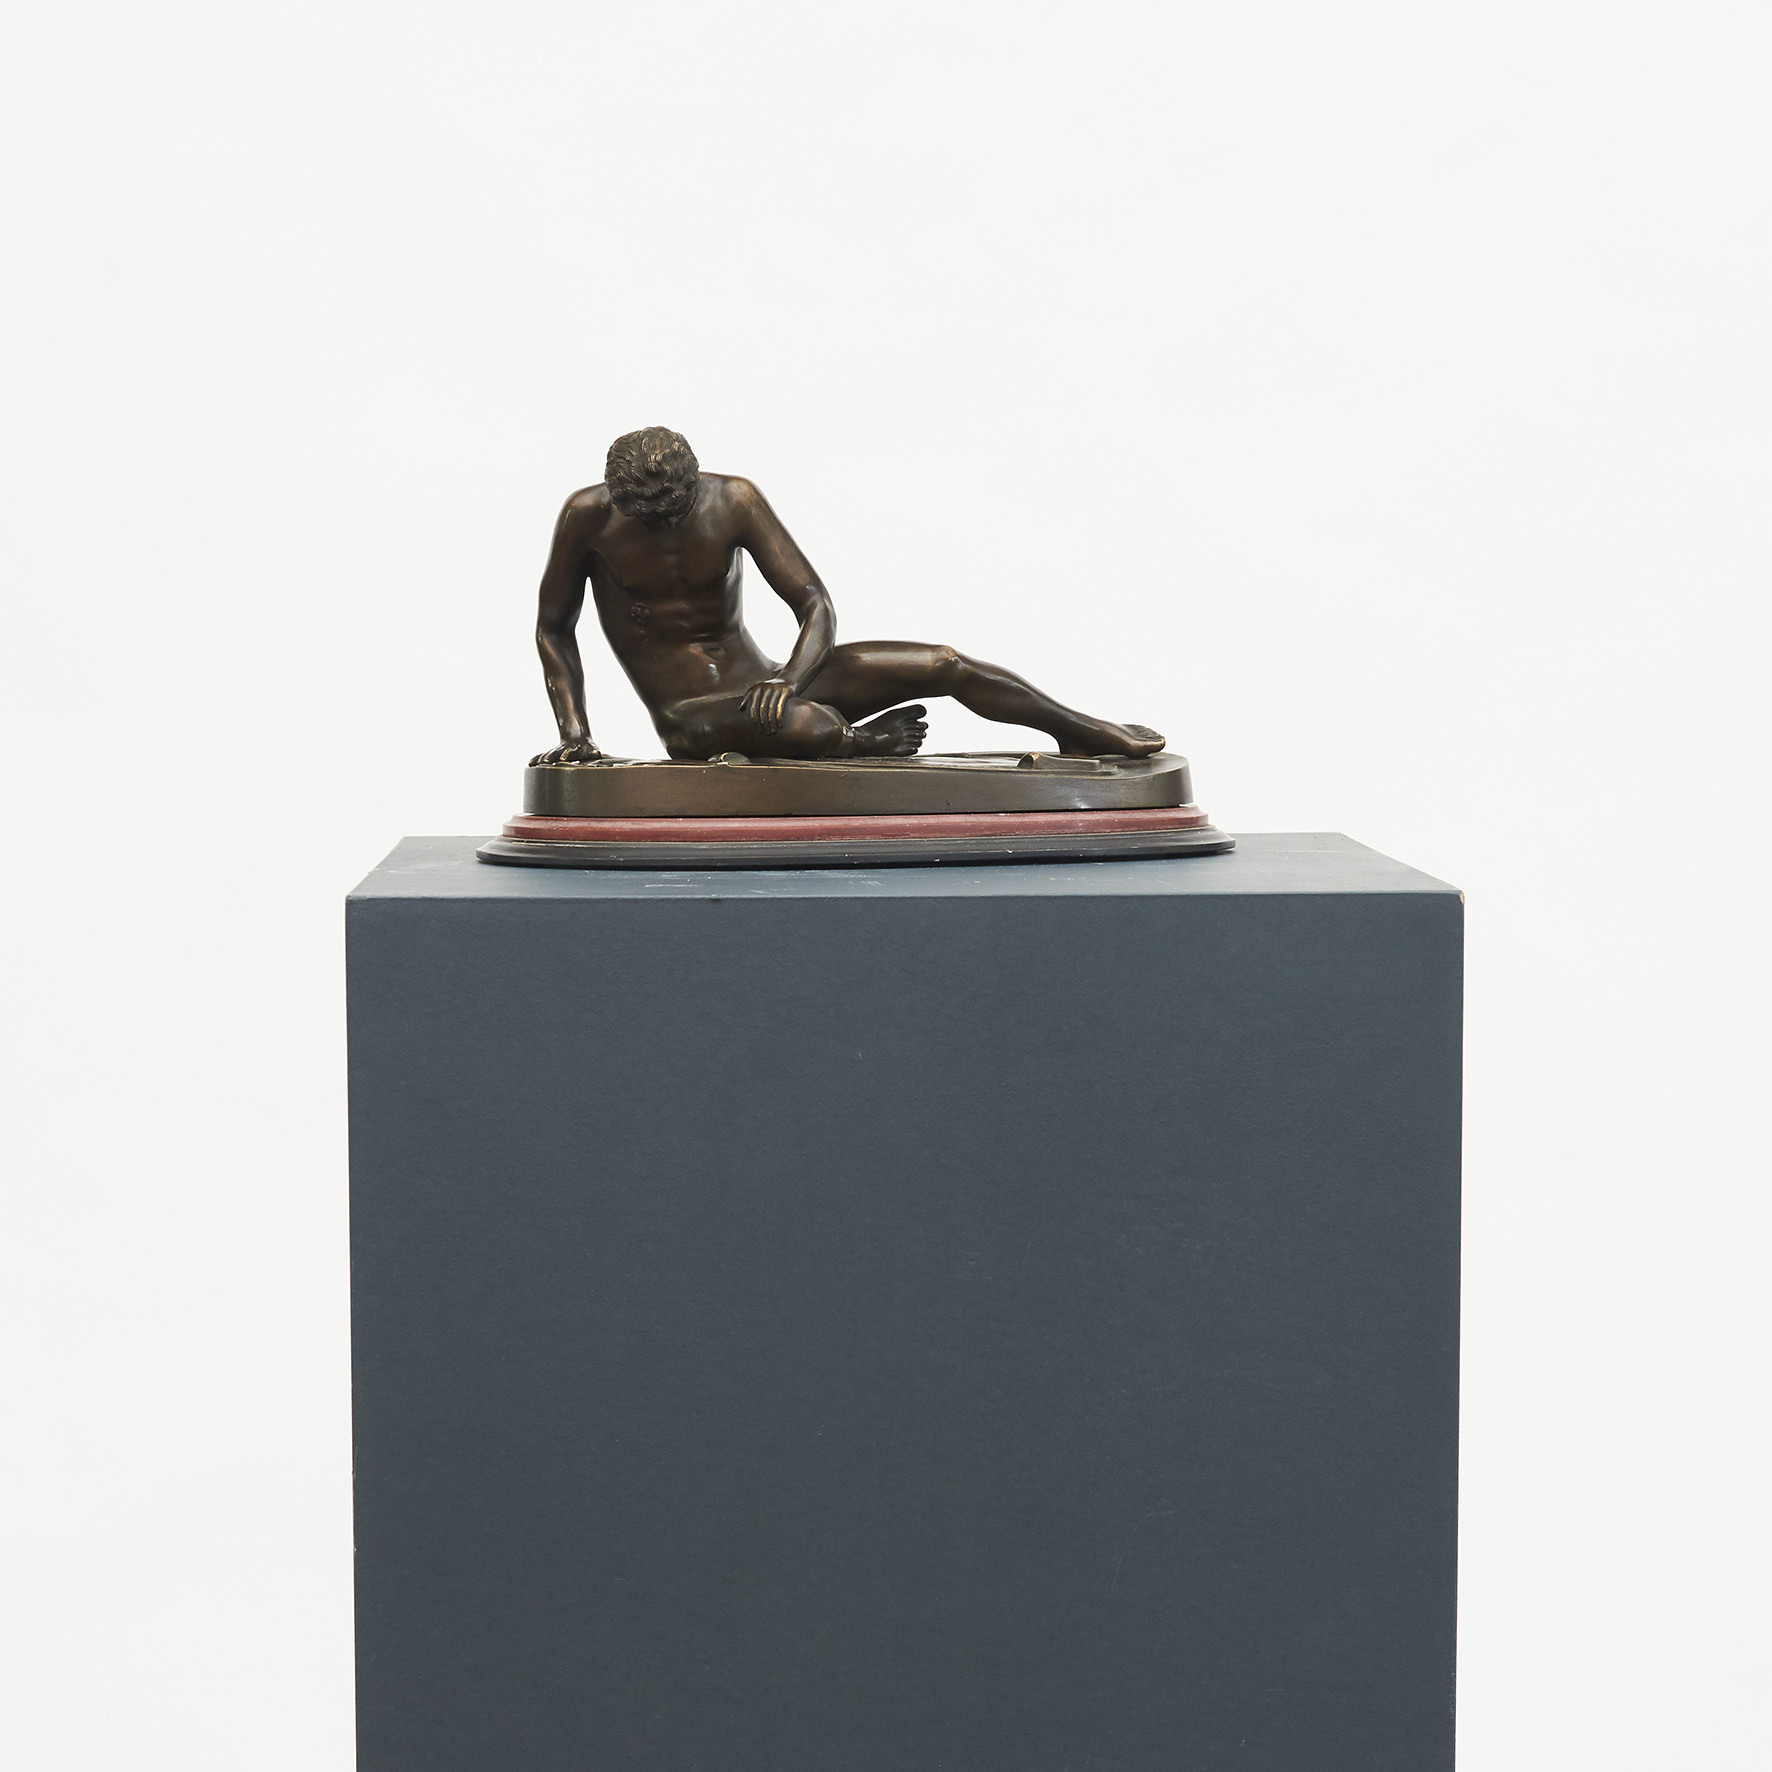 'Grand Tour' Bronze Sculpture